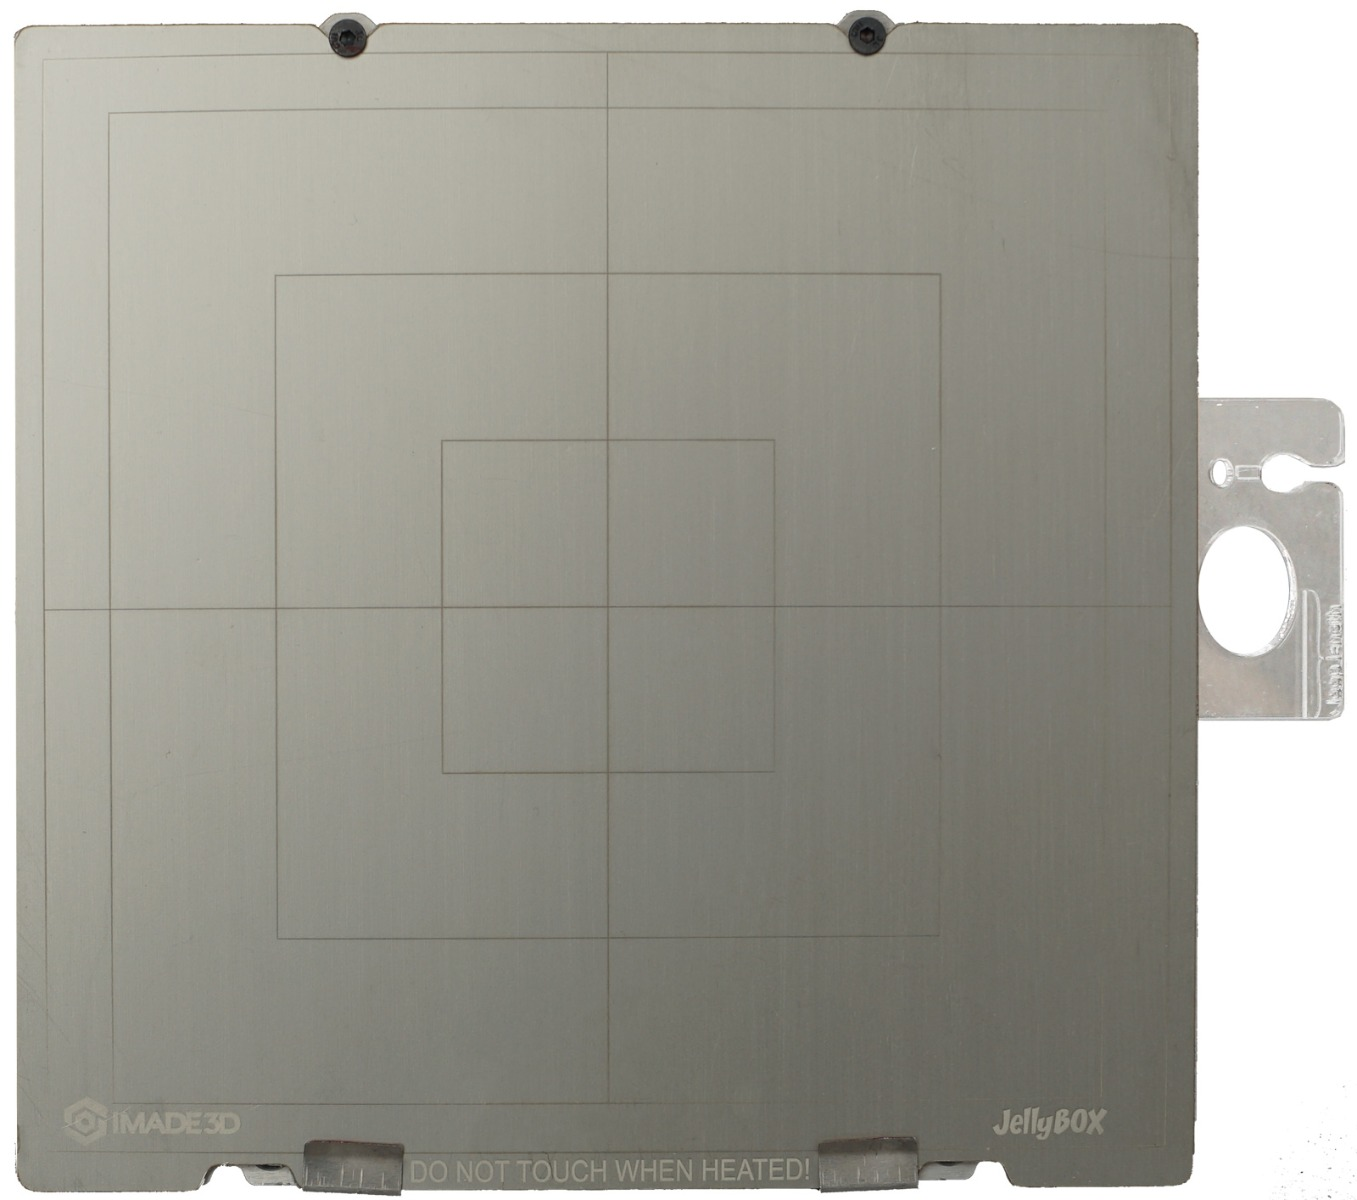 Flexible print plate mounted on the JellyBOX 2 heated bed